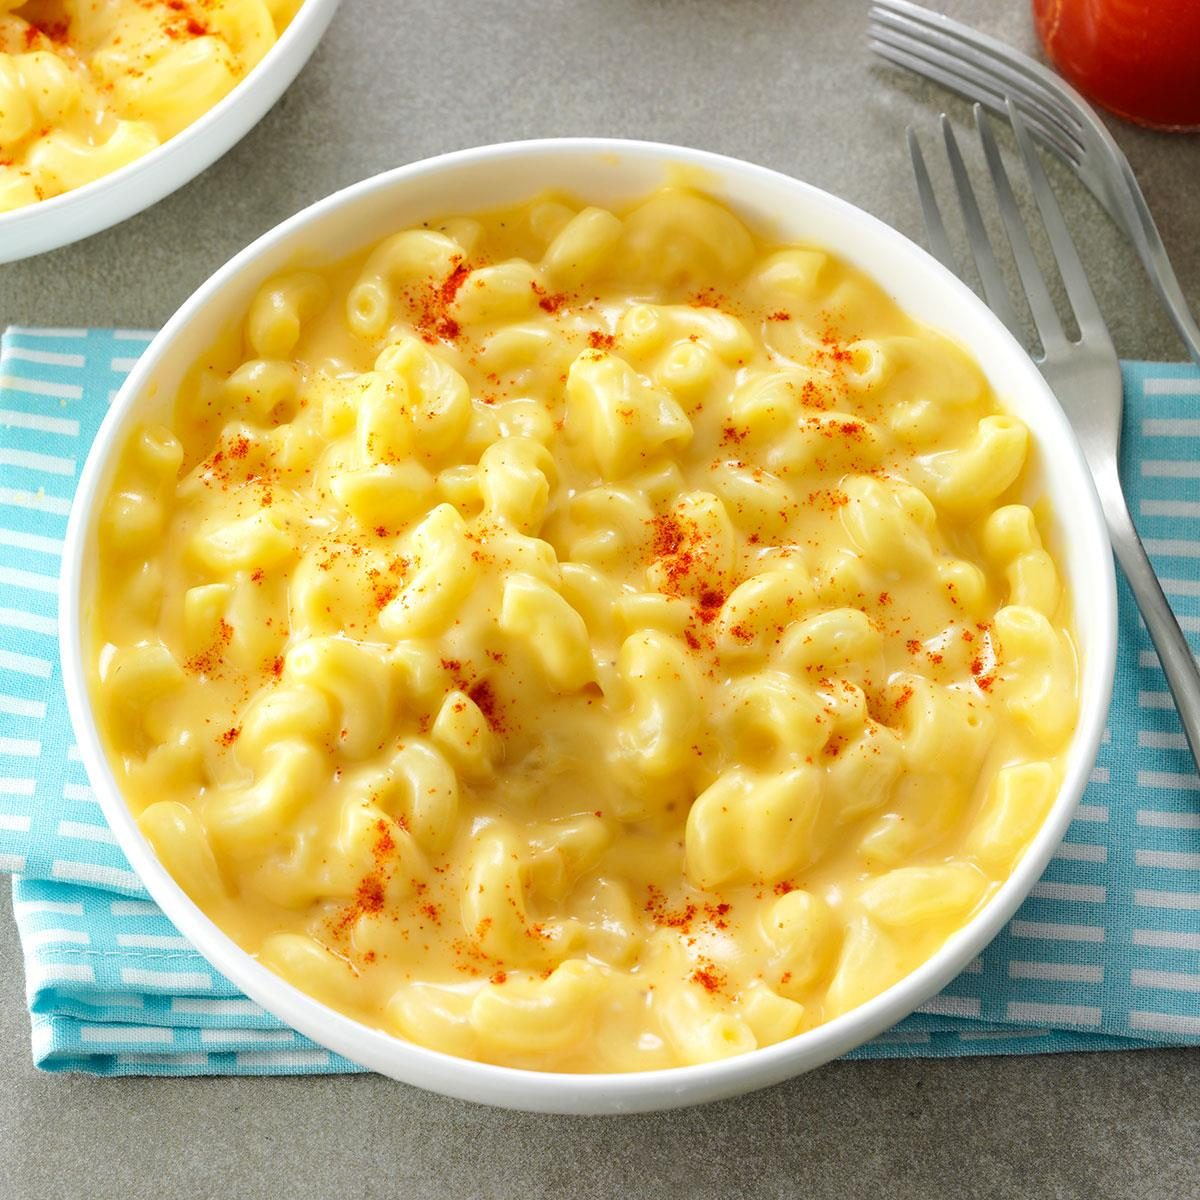 Stovetop macaroni and cheese recipe taste of home - Quince recipes for babies a healthy fall ...